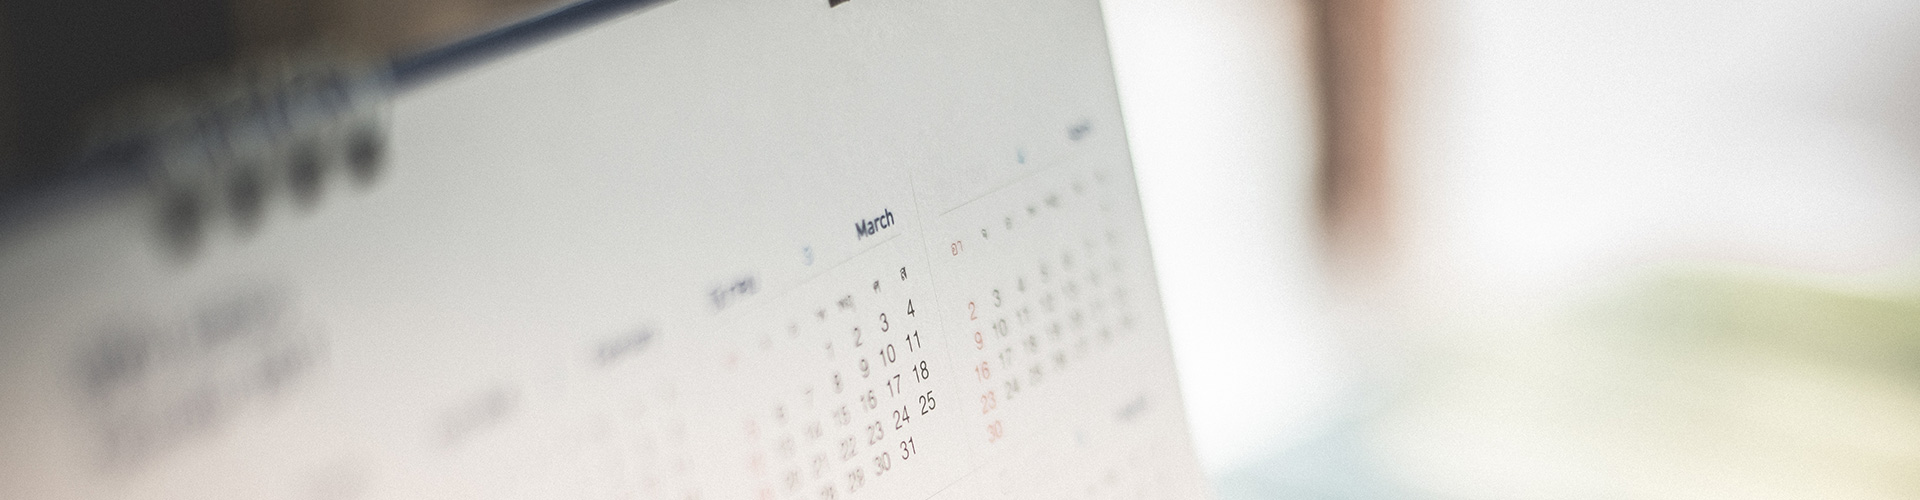 When to Post Content Based on Time and Audience